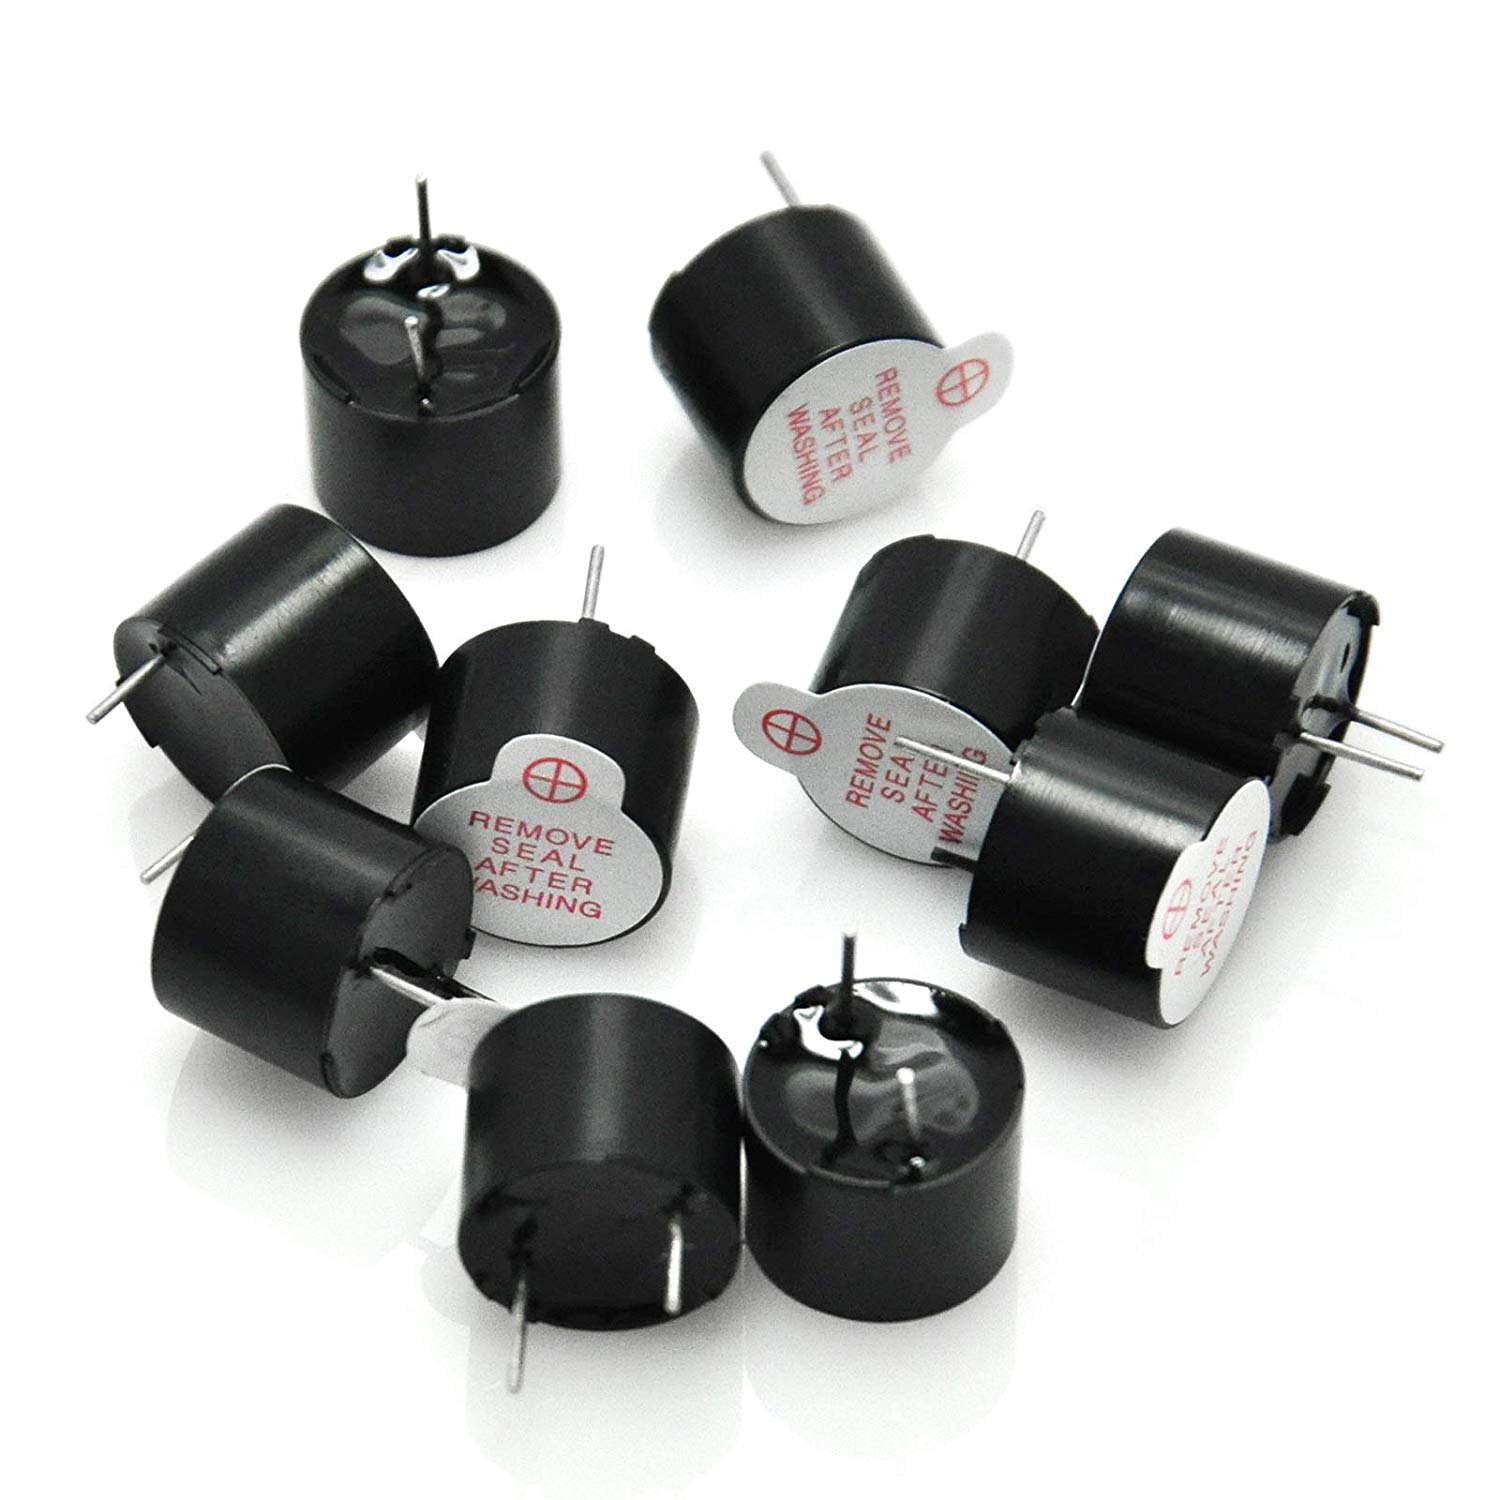 10pcs/lot 3V Active Buzzer Alarm 9x5.5MM 0955 3 V Mini Active Piezo Buzzer Fit For Arduino Buzzers 9MM*5.5MM TMB09A03